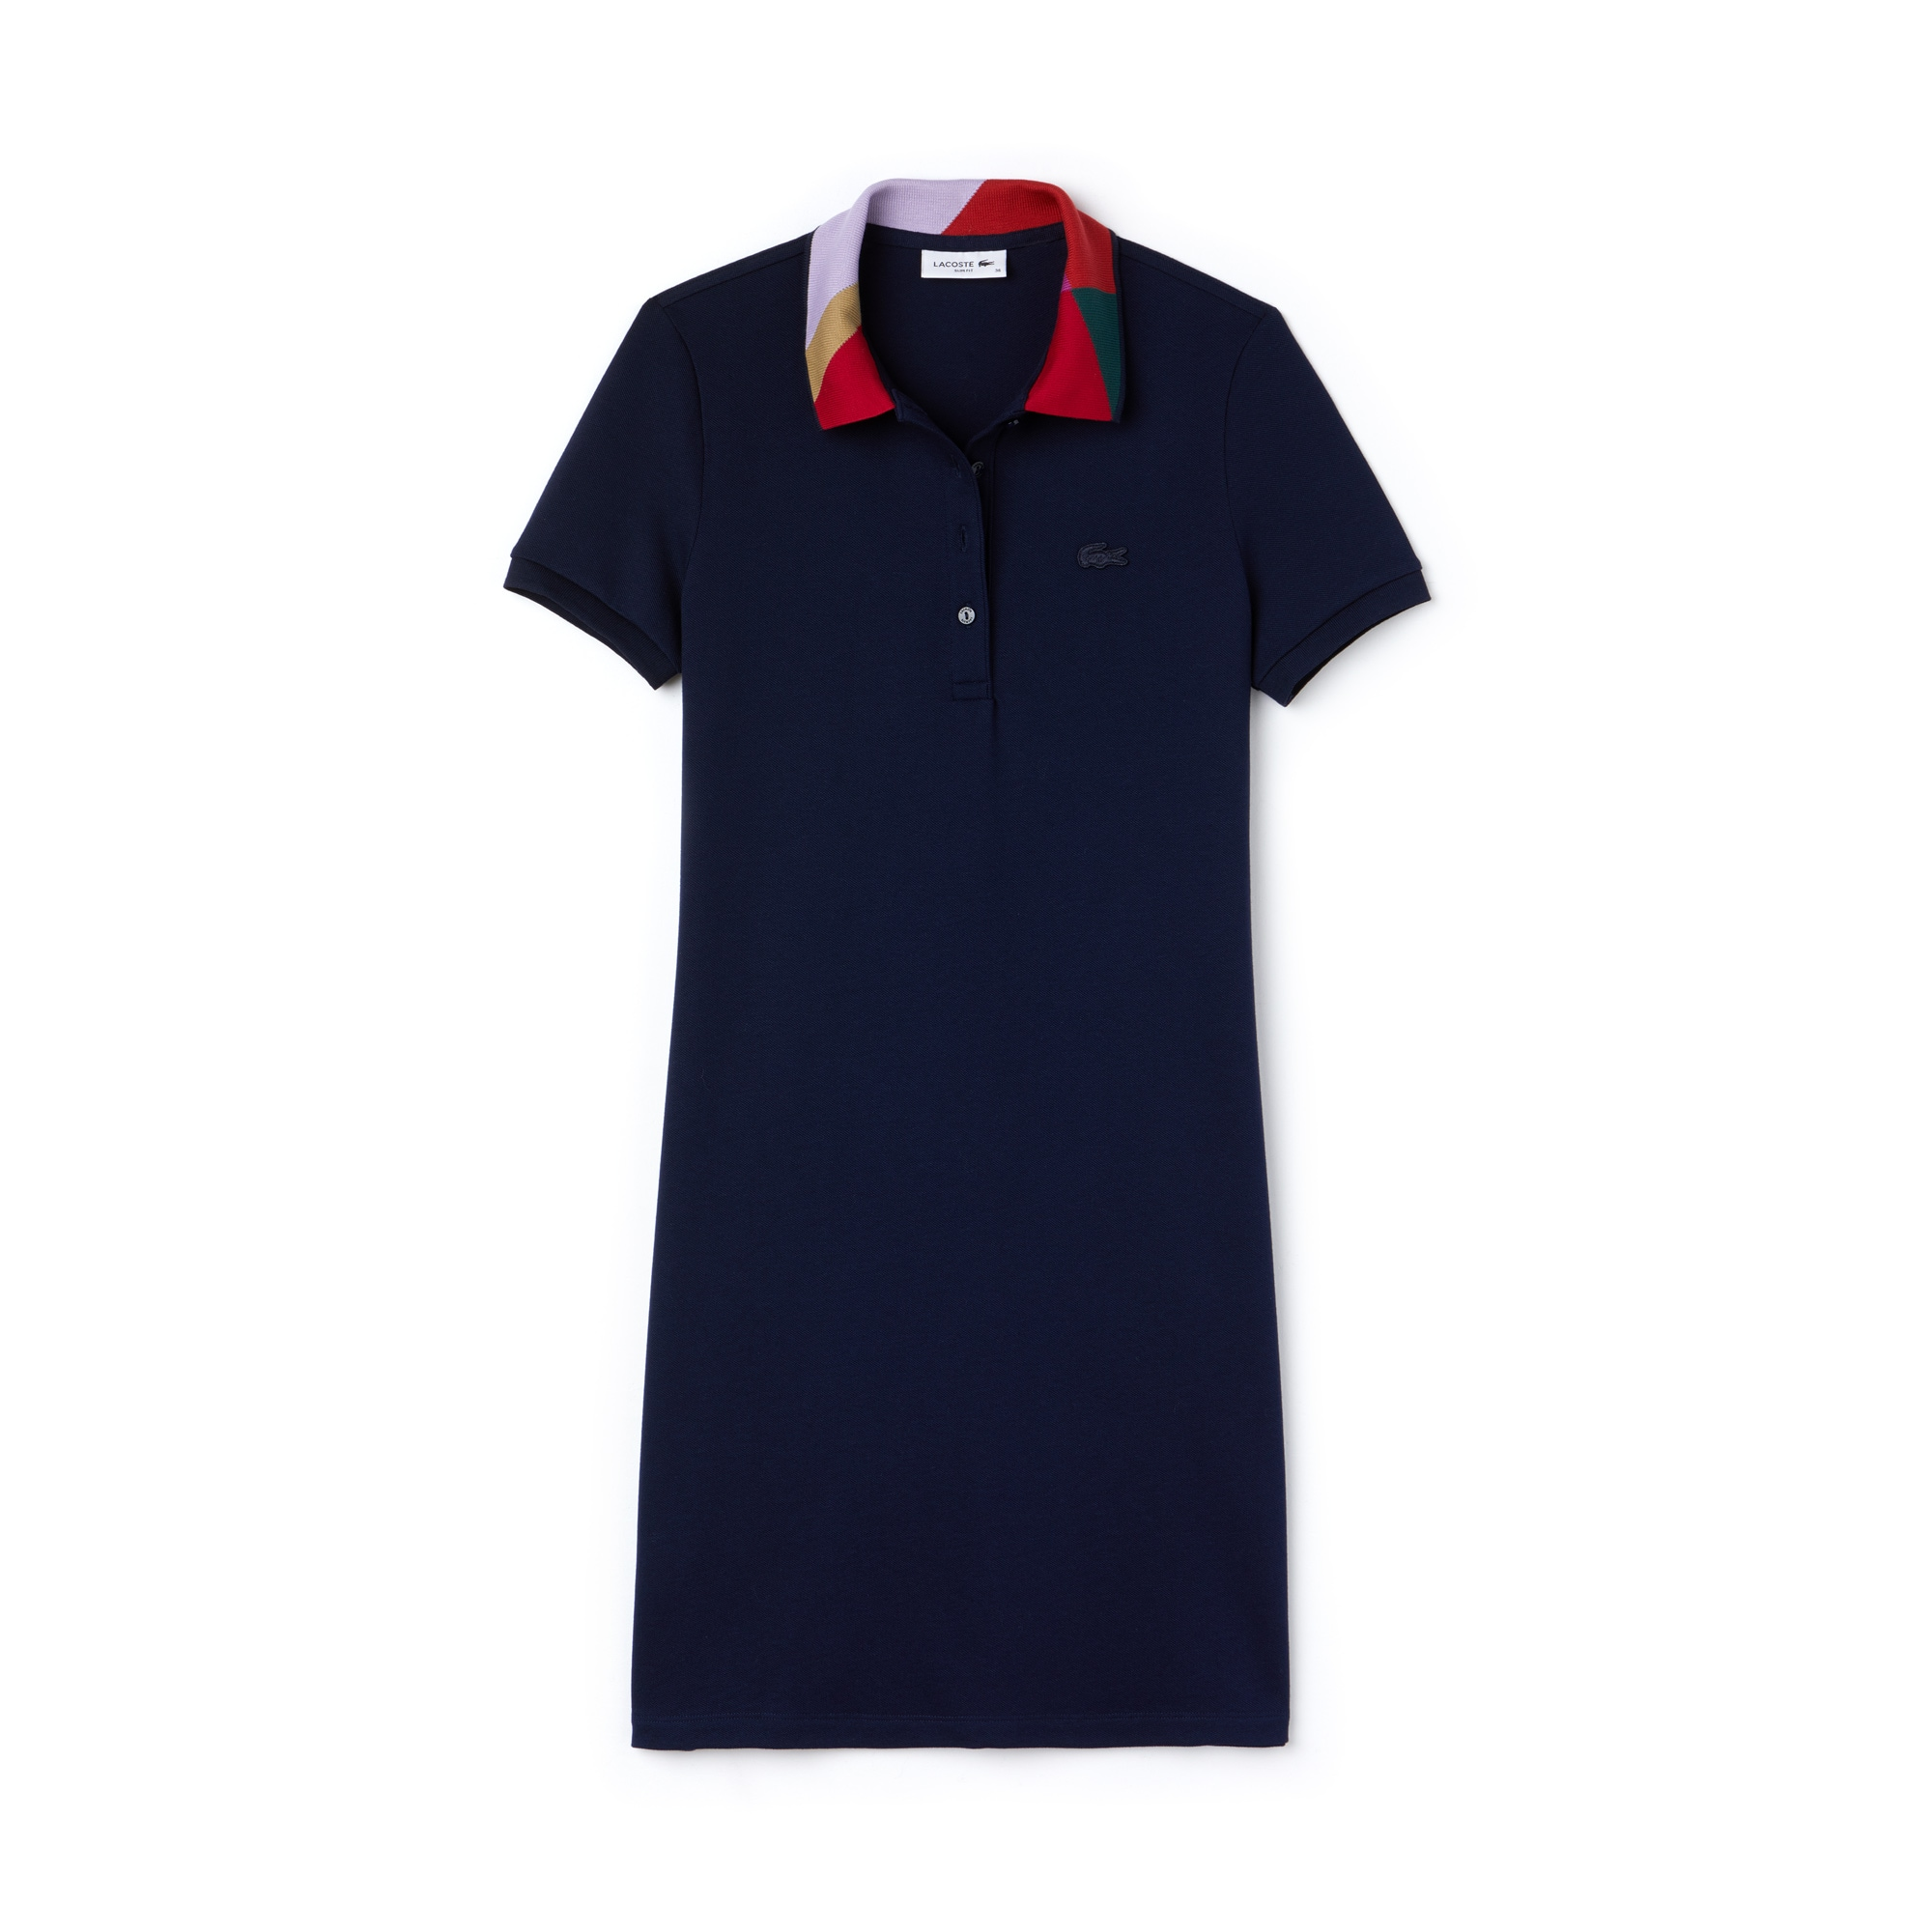 Robe polo slim fit en mini piqué avec col jacquard color block